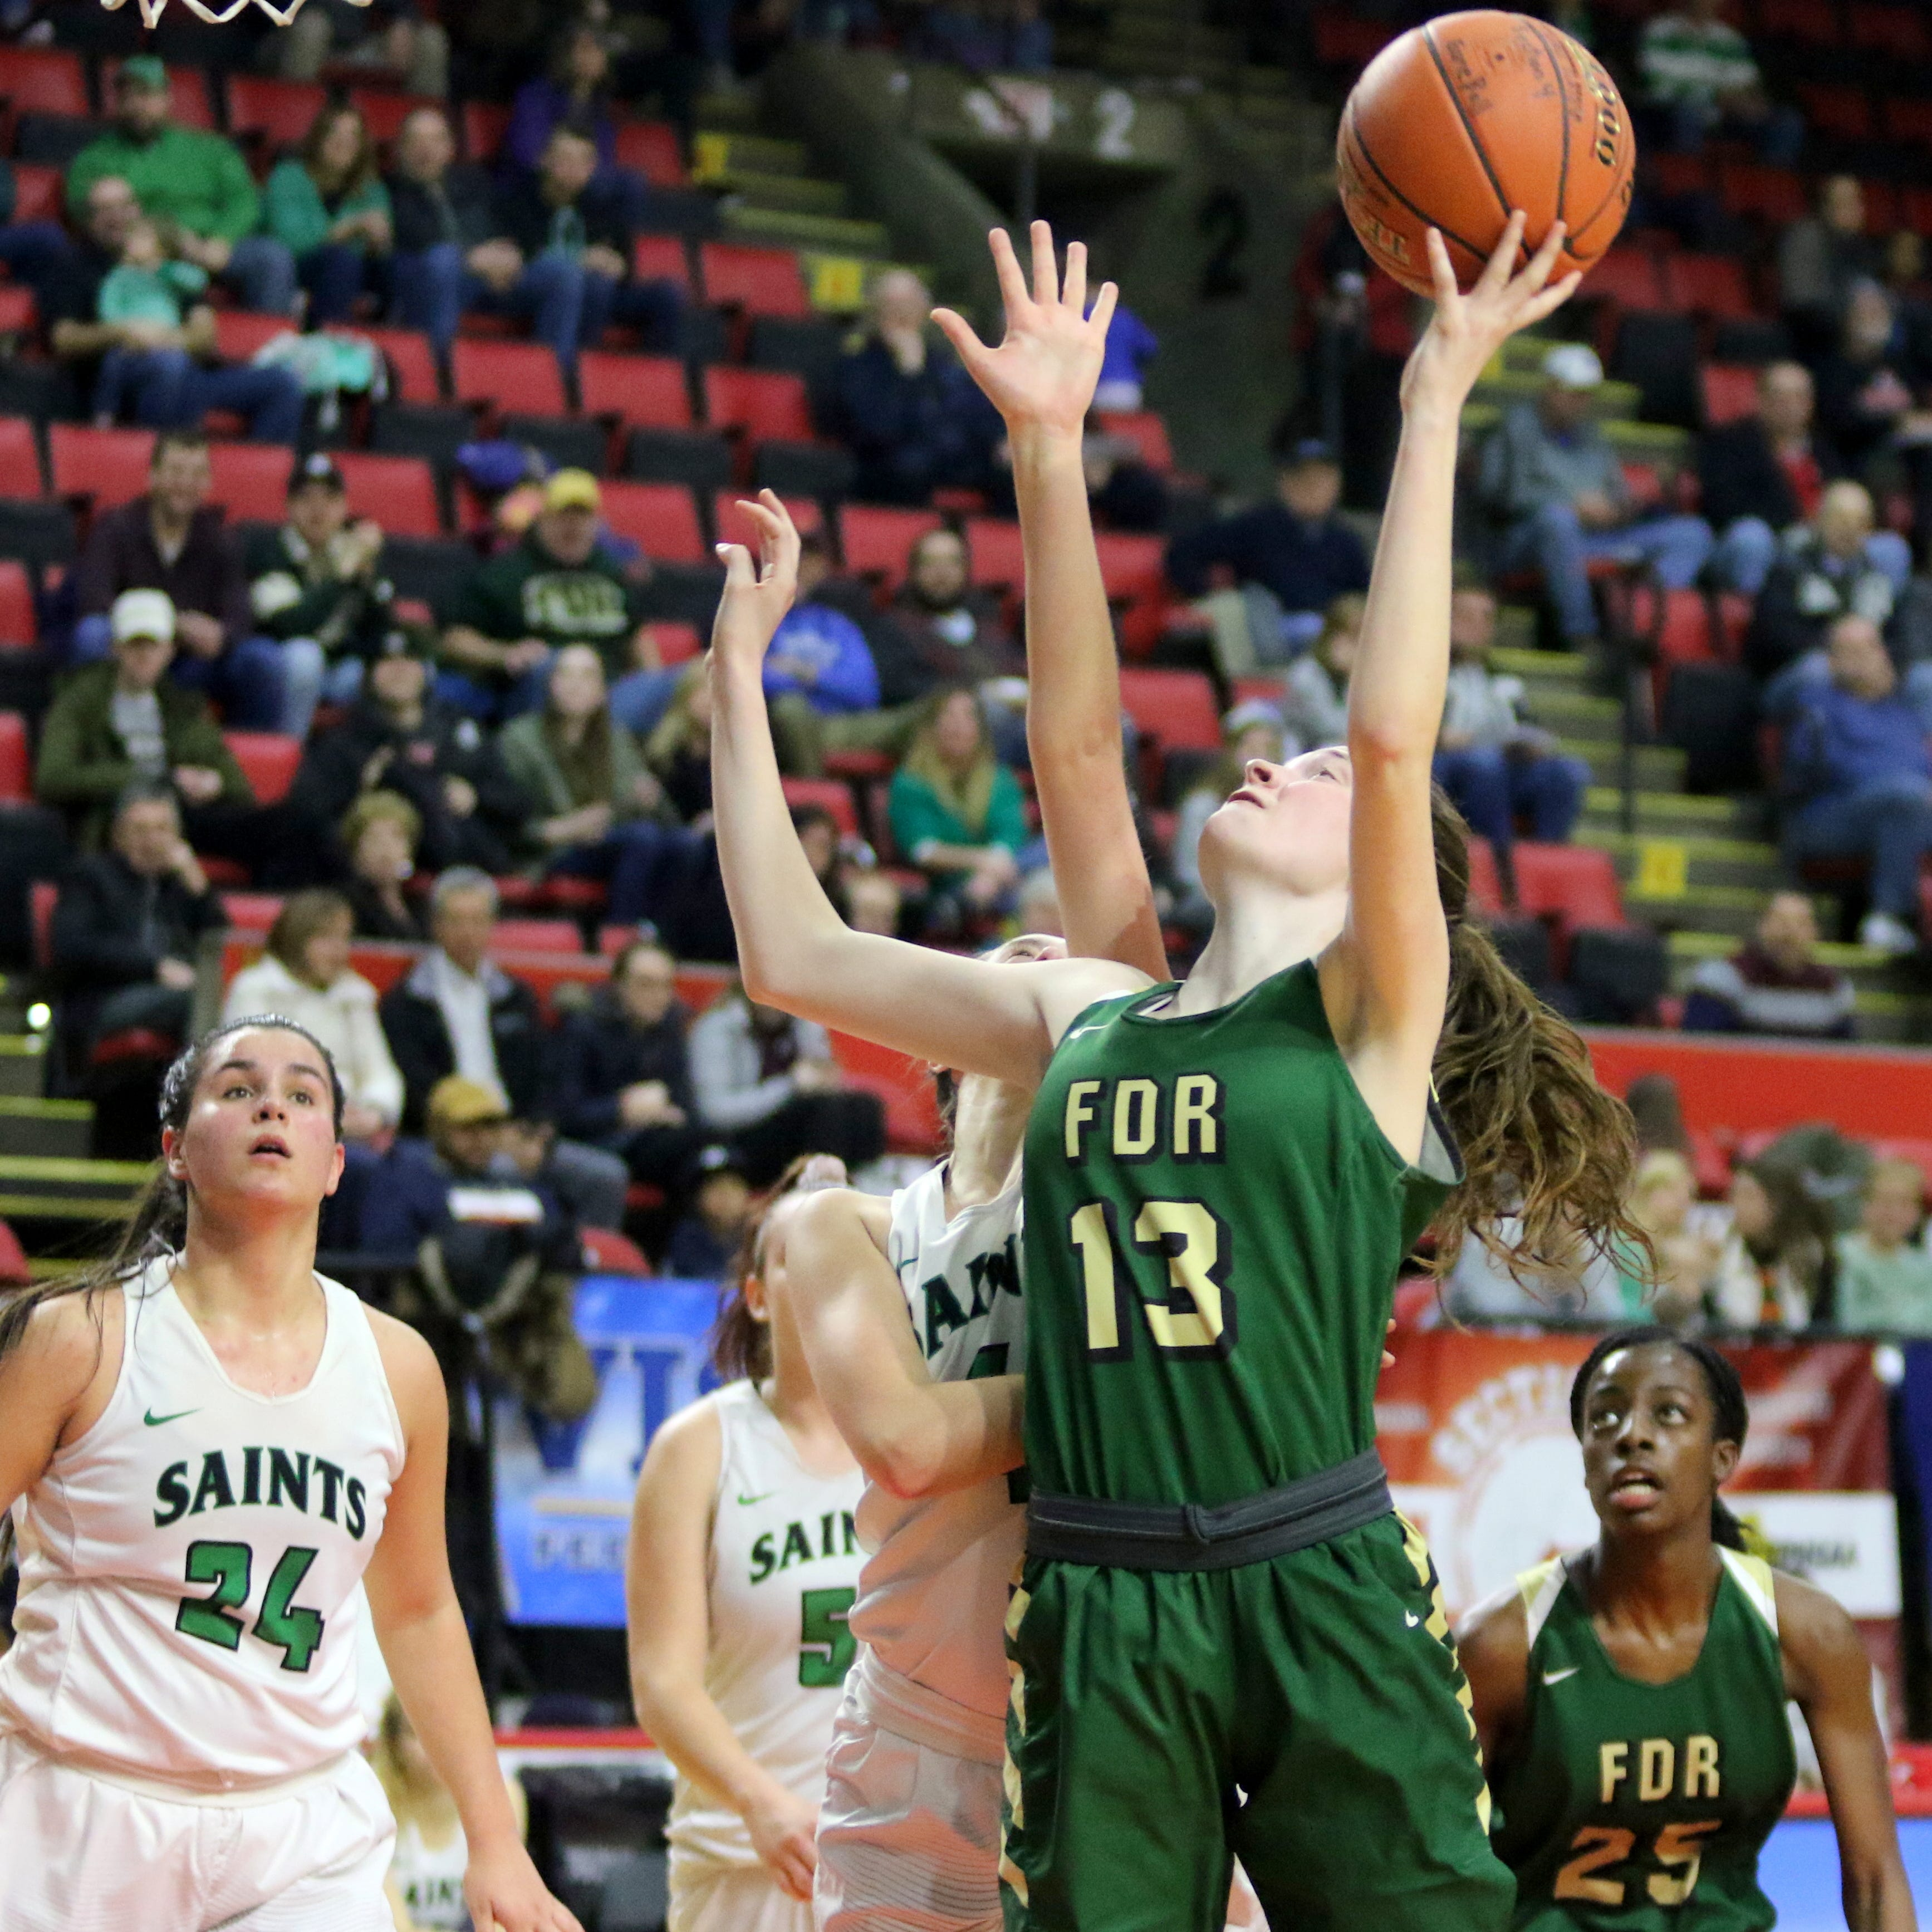 Roosevelt's sterling season ends in regional final loss to Seton Catholic